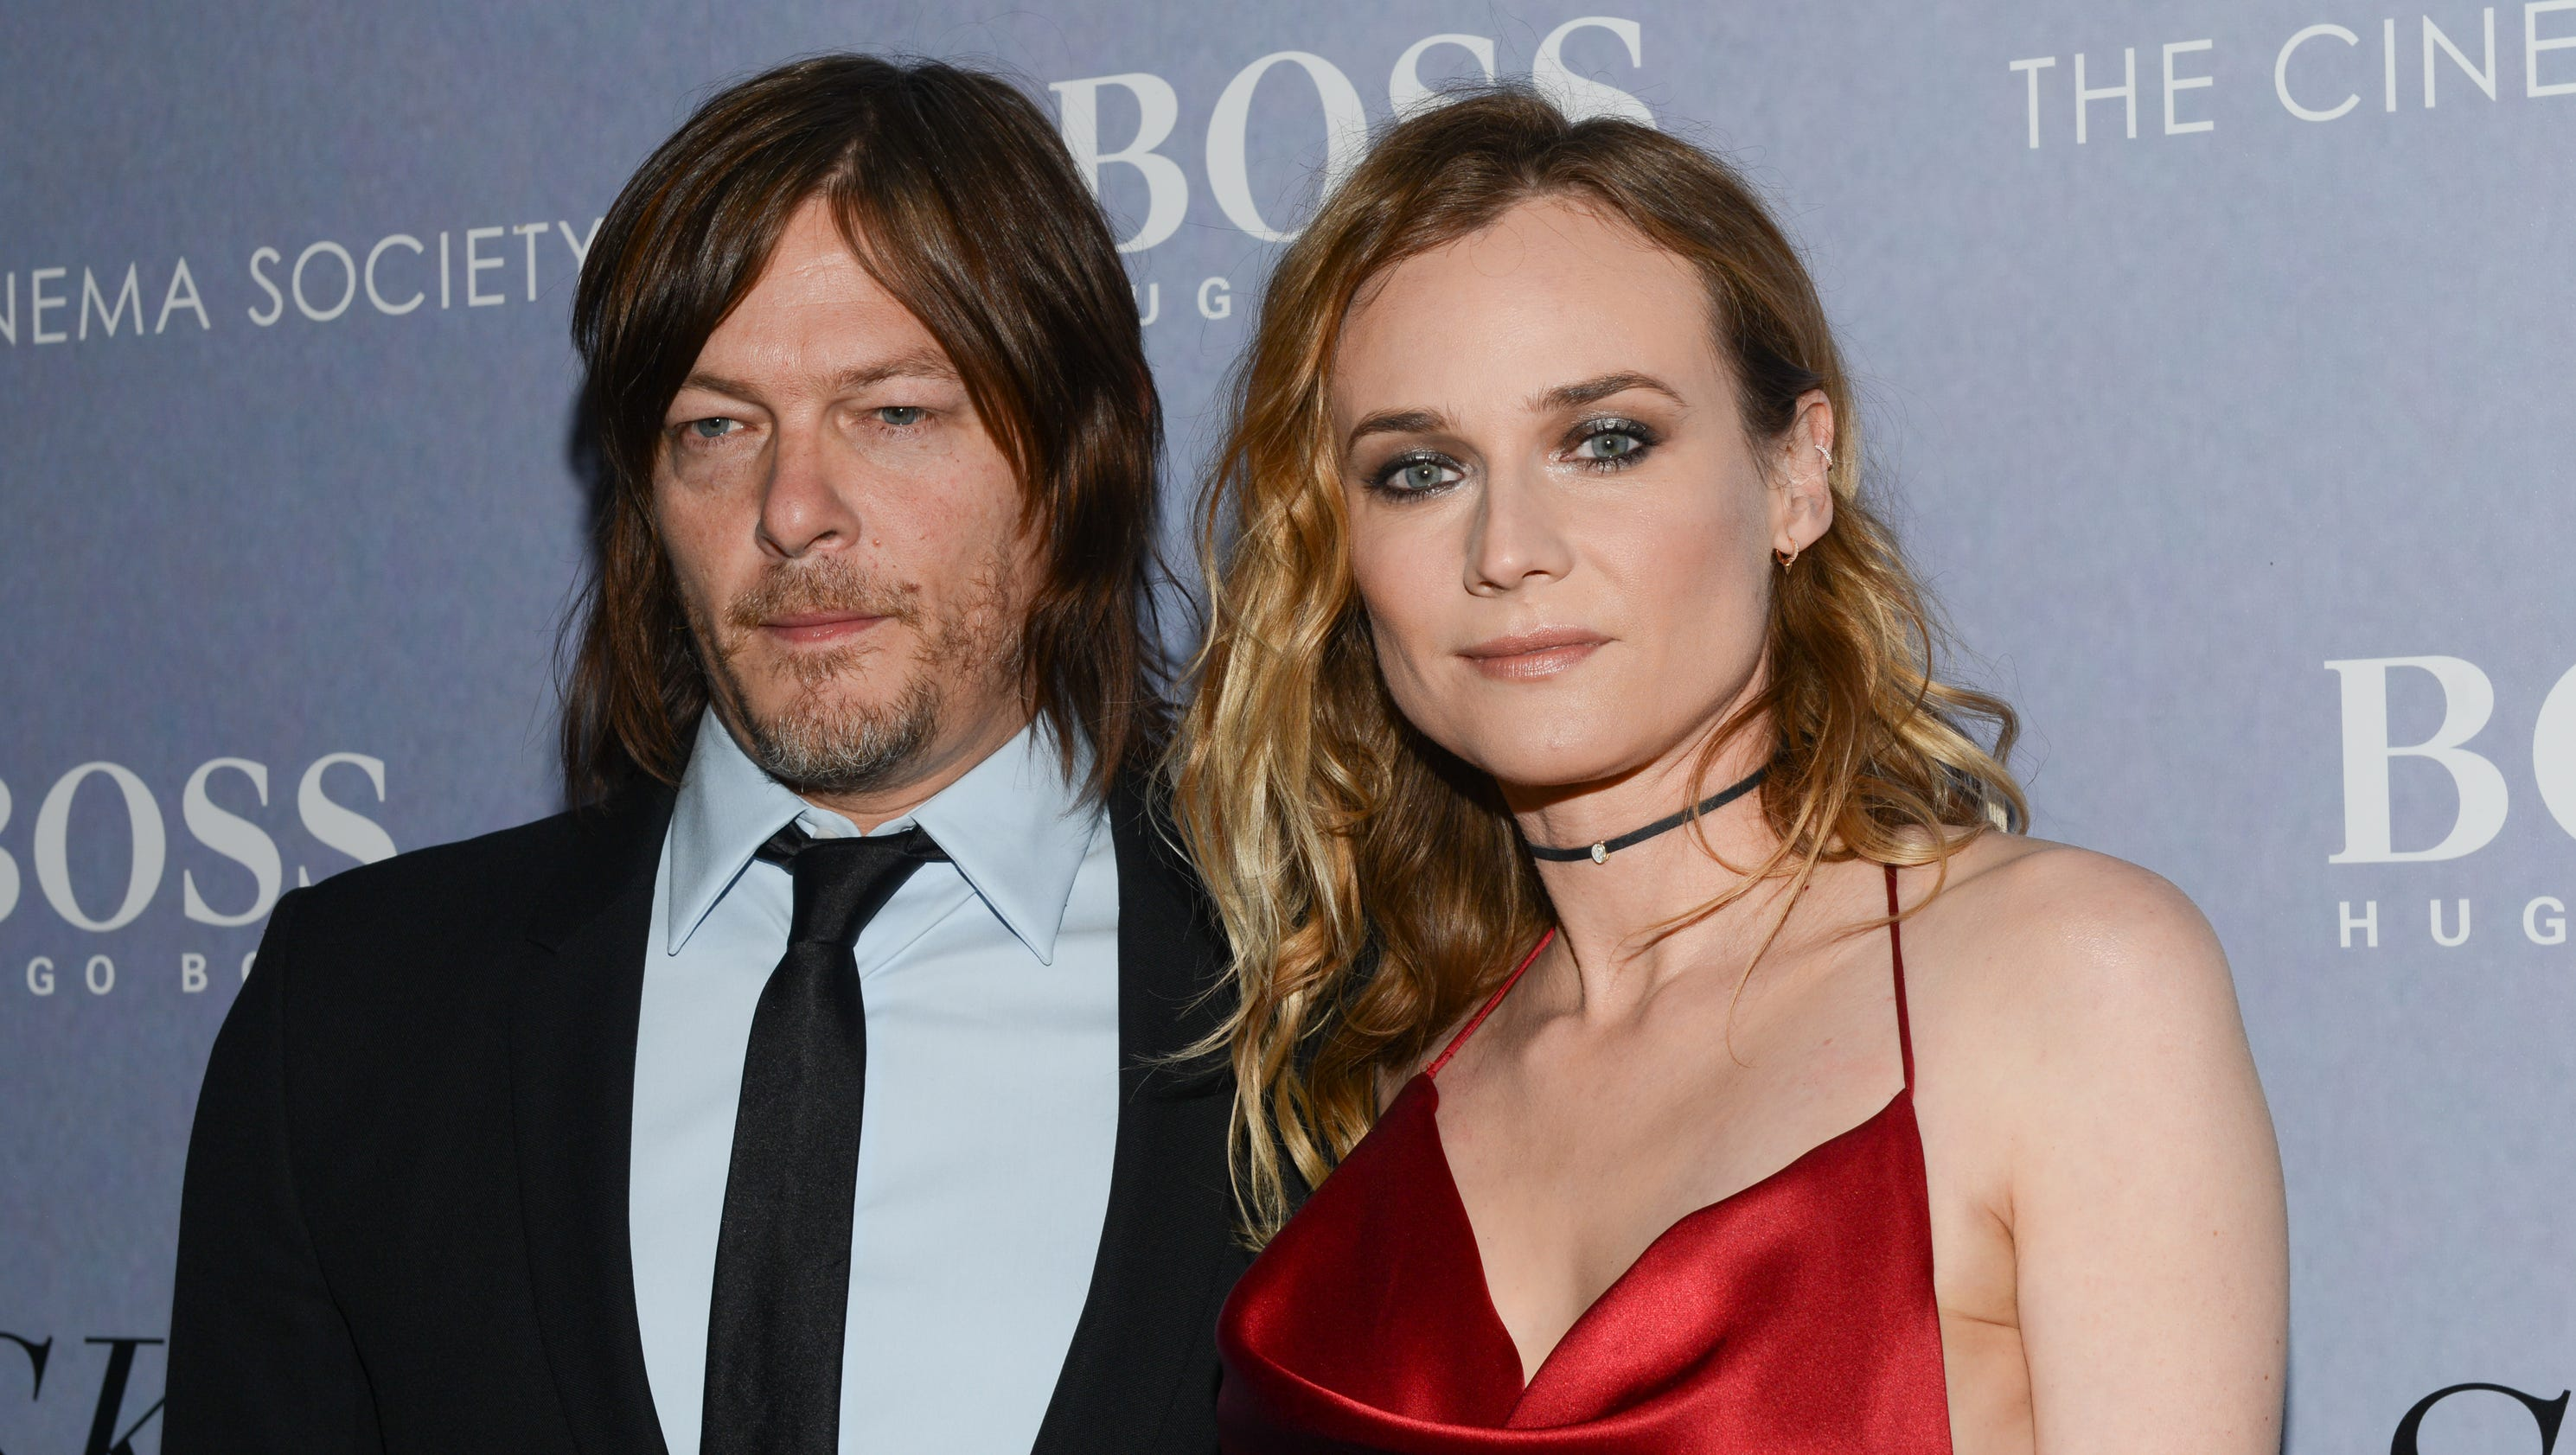 Norman Reedus and Diane Kruger pack on PDA amid dating rumors